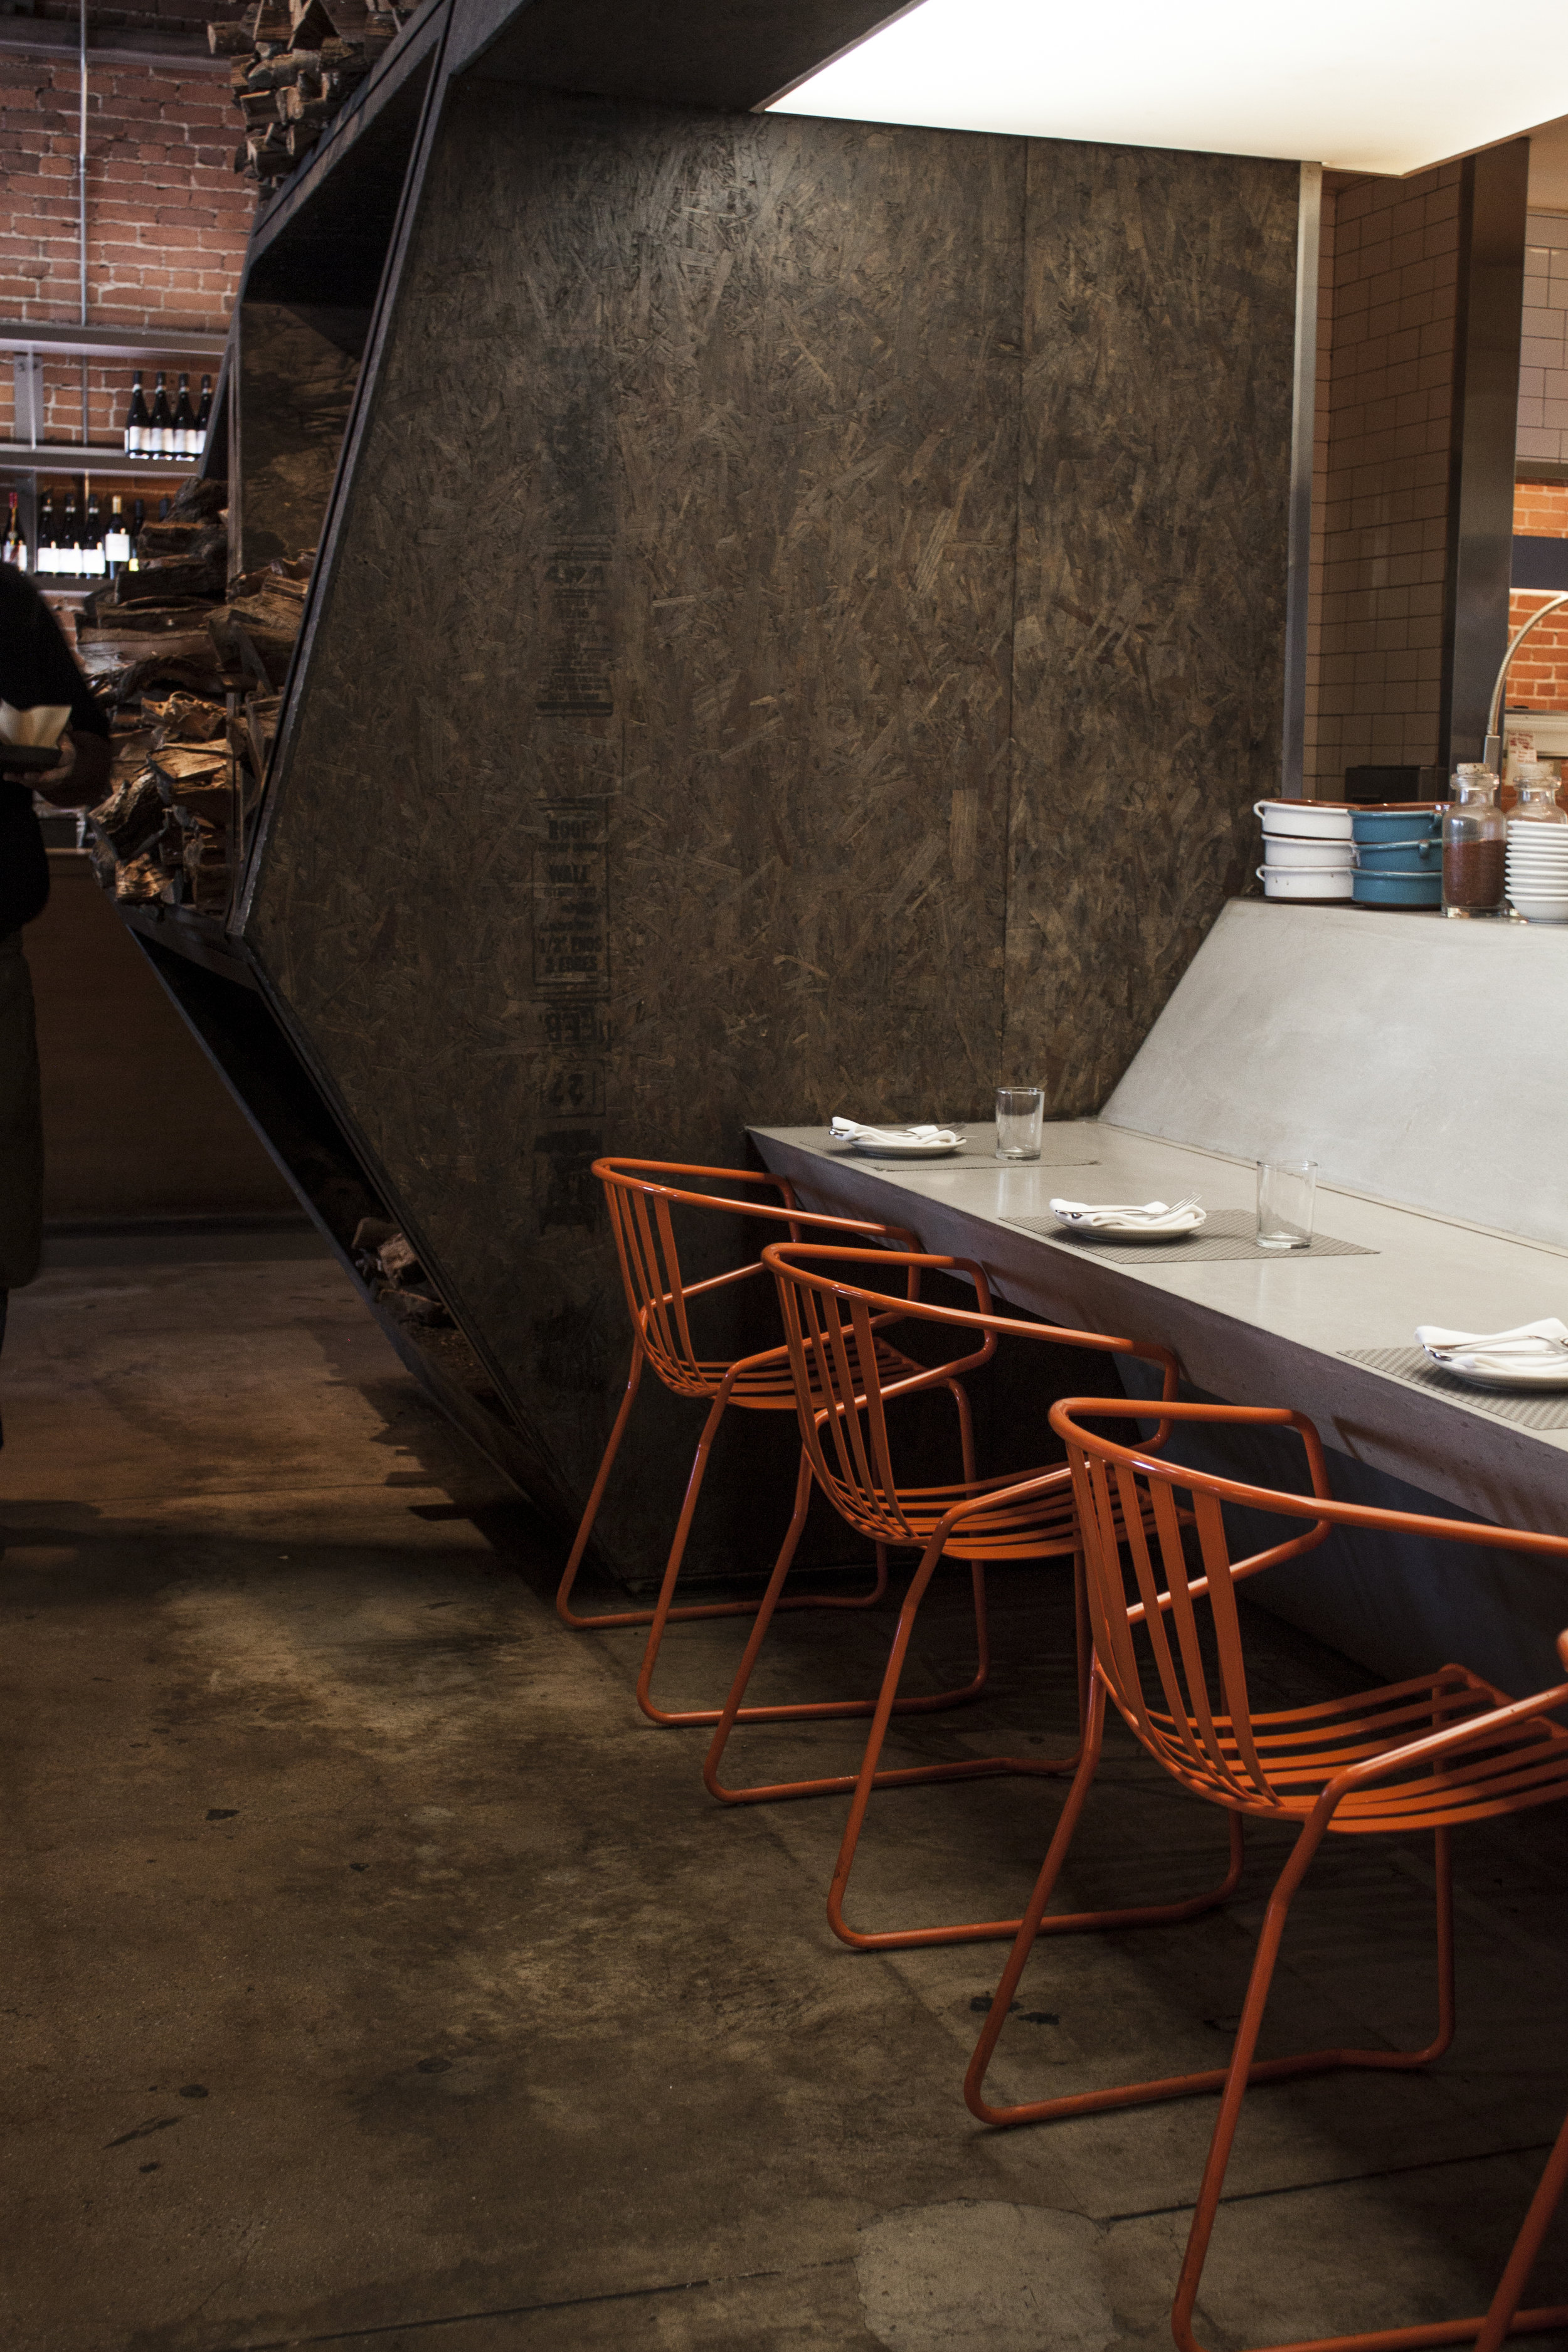 Odys Penelope located in Mid City Los Angeles, is one of the coolest designed restaurants in LA.Odys + Penelope.